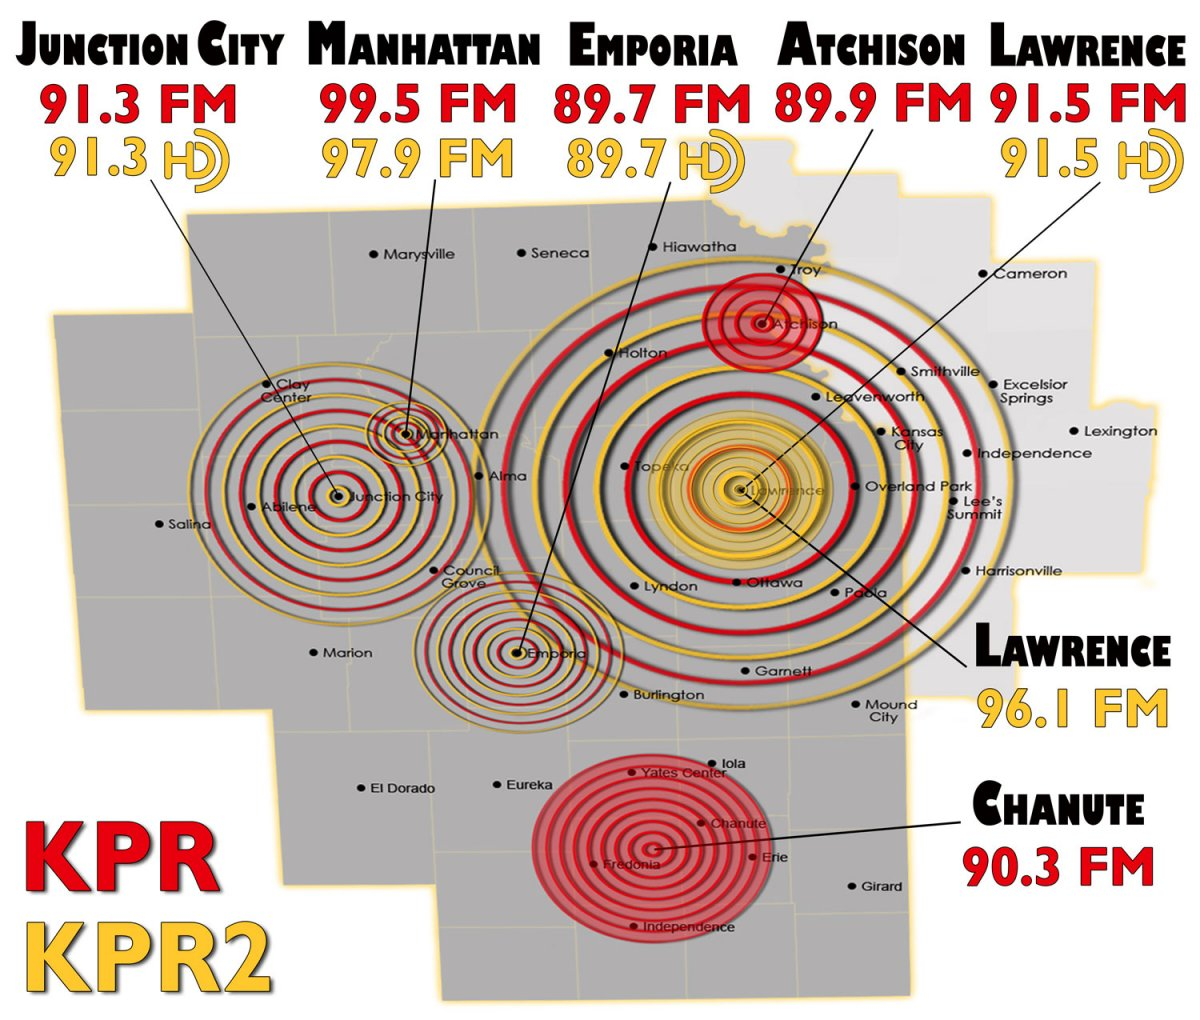 Coverage map for KPR and KPR2